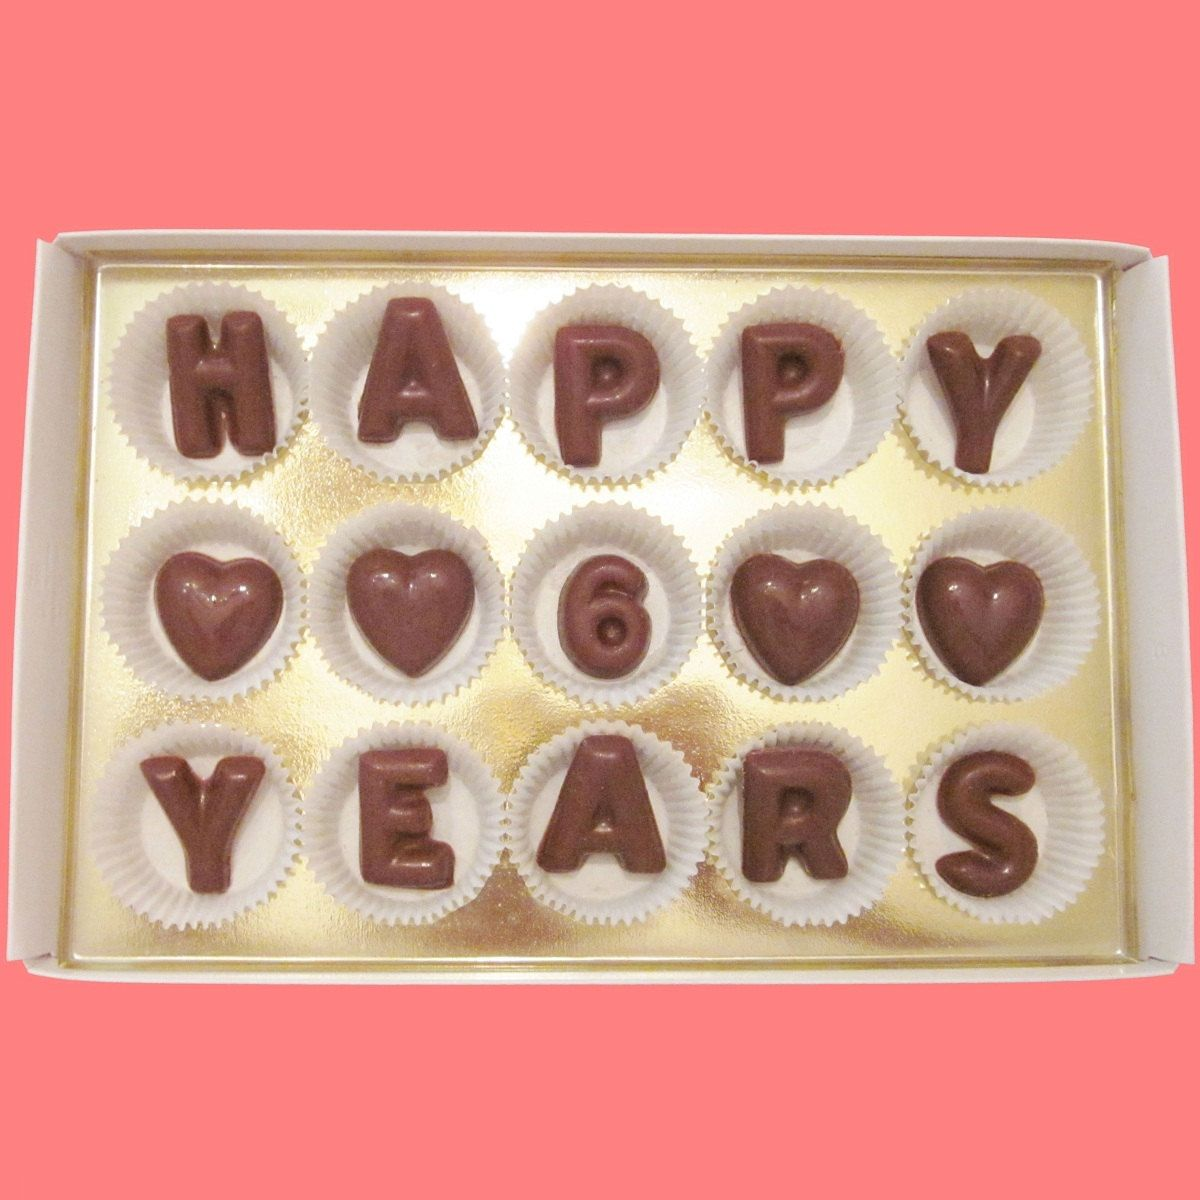 6th Anniversary Gift For Husband Wife Men Women 6 Years Happy Sixth Cubic Chocolate Letters Romantic Luxury Cool Fun